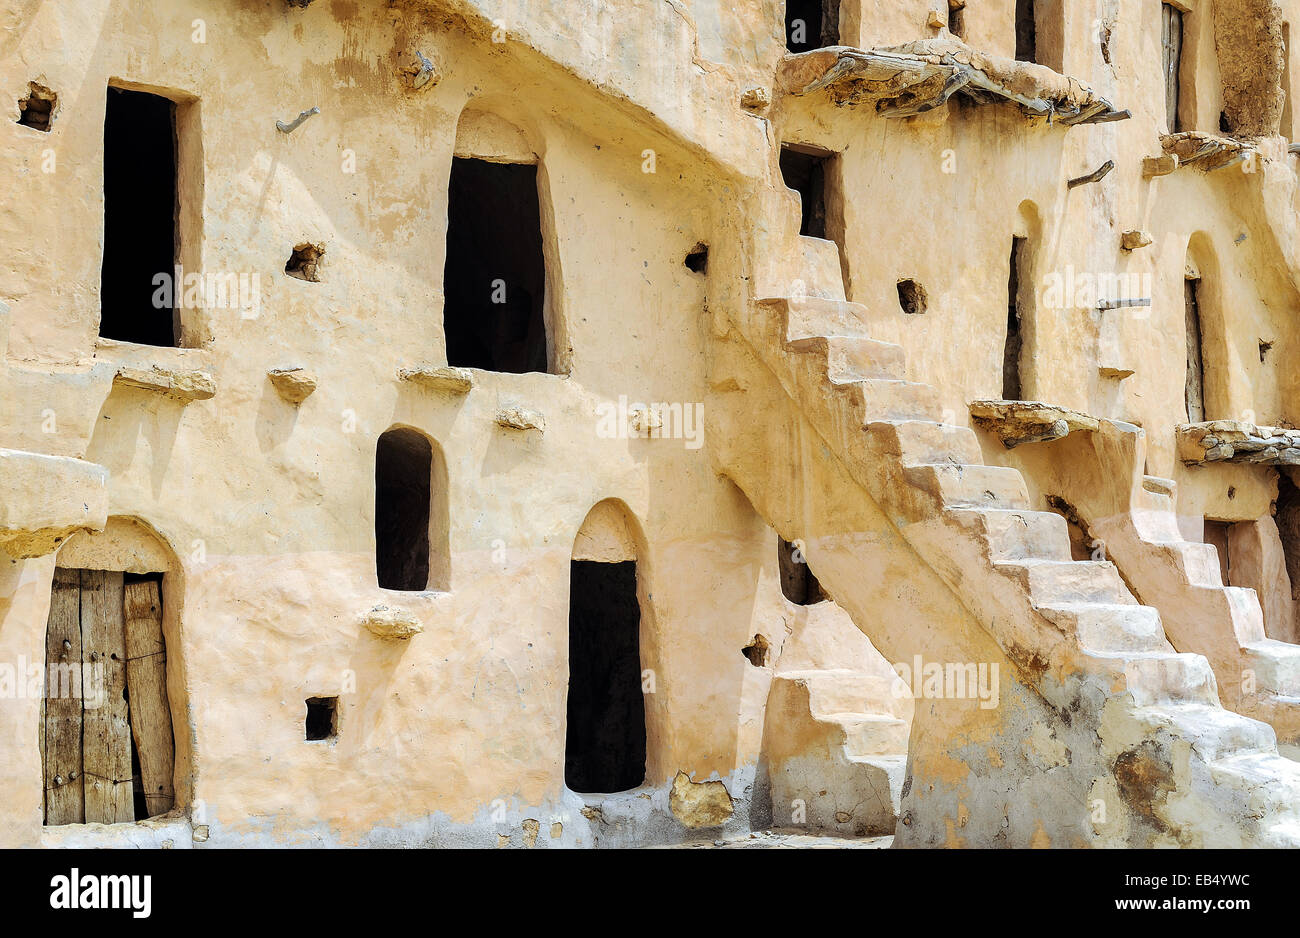 South of Tunisia, Tataouine,the Ksar Ouled Soltane,ancient berber fortified granary Stock Photo